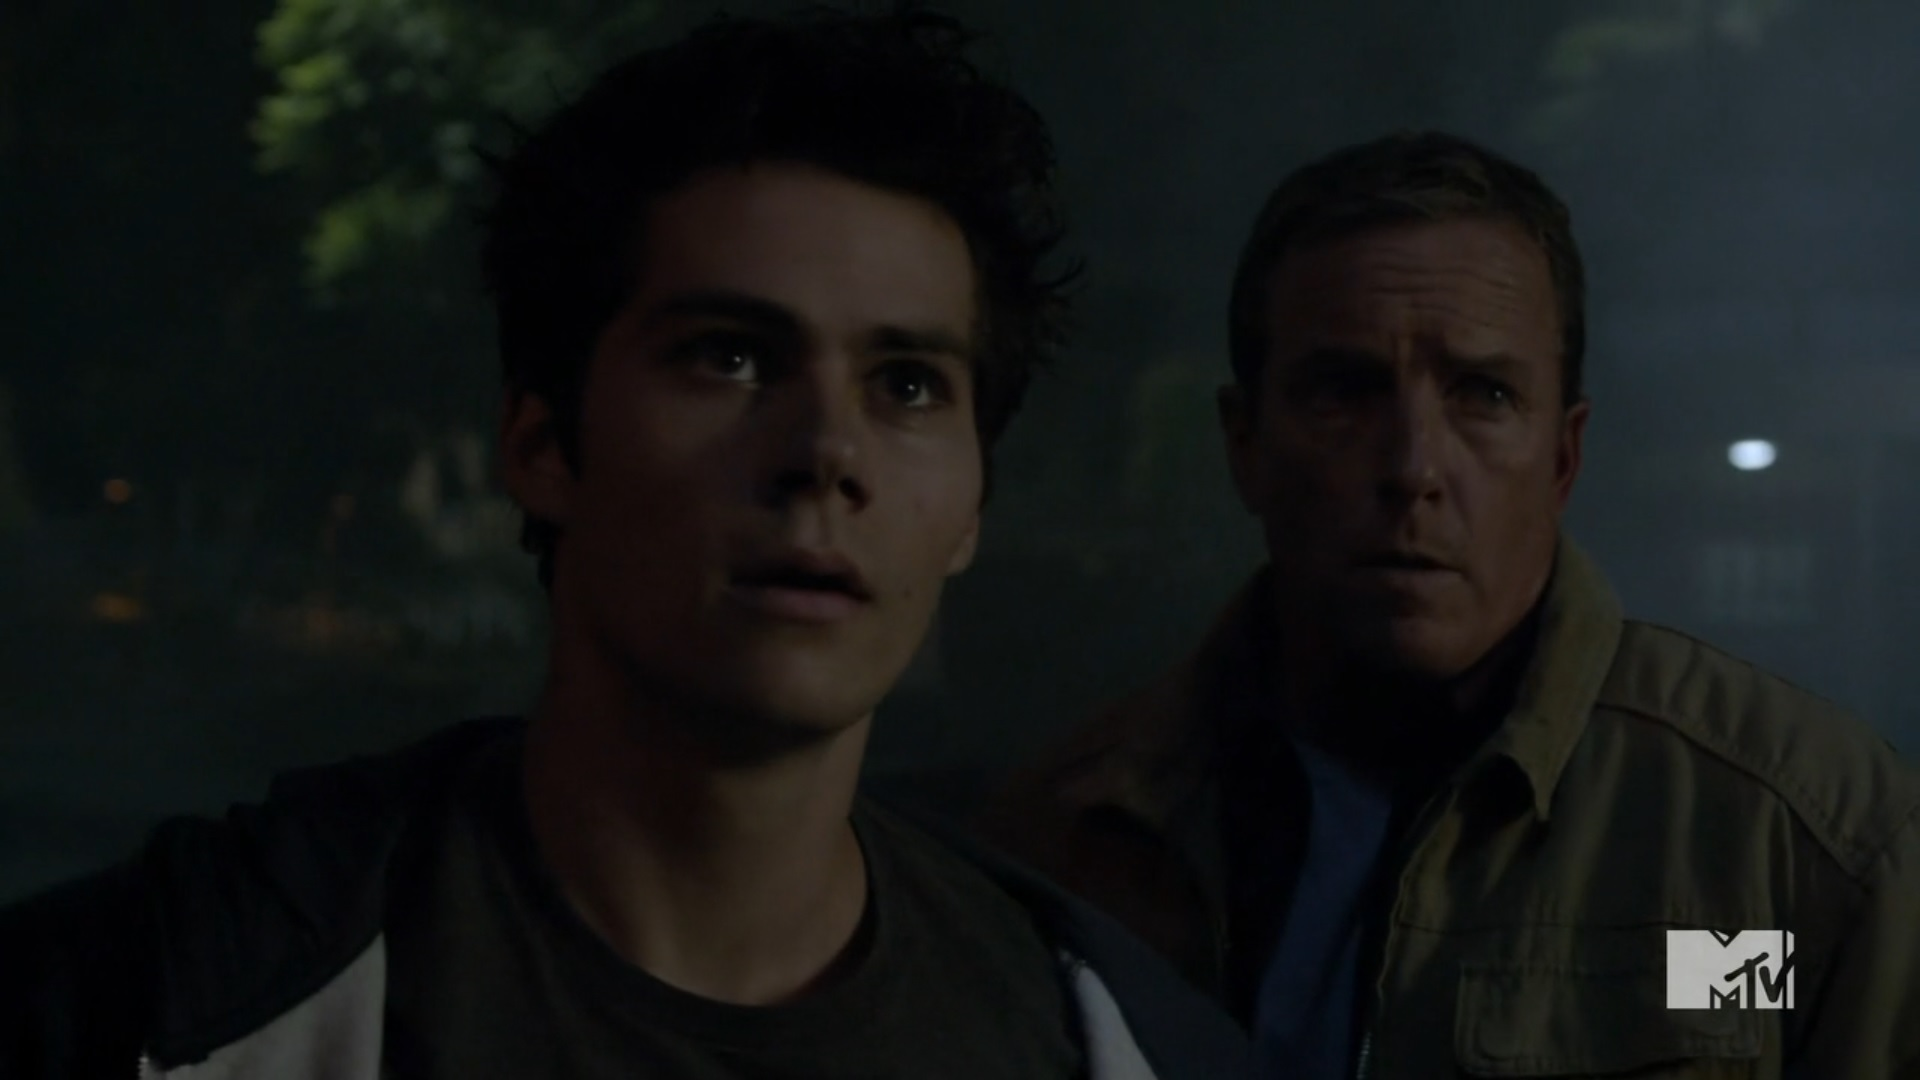 Teen Wolf Season 3 Episode 20 Echo House Dylan Obrien Linden Ashby Stiles And Dad In Front Of Echo House.jpg